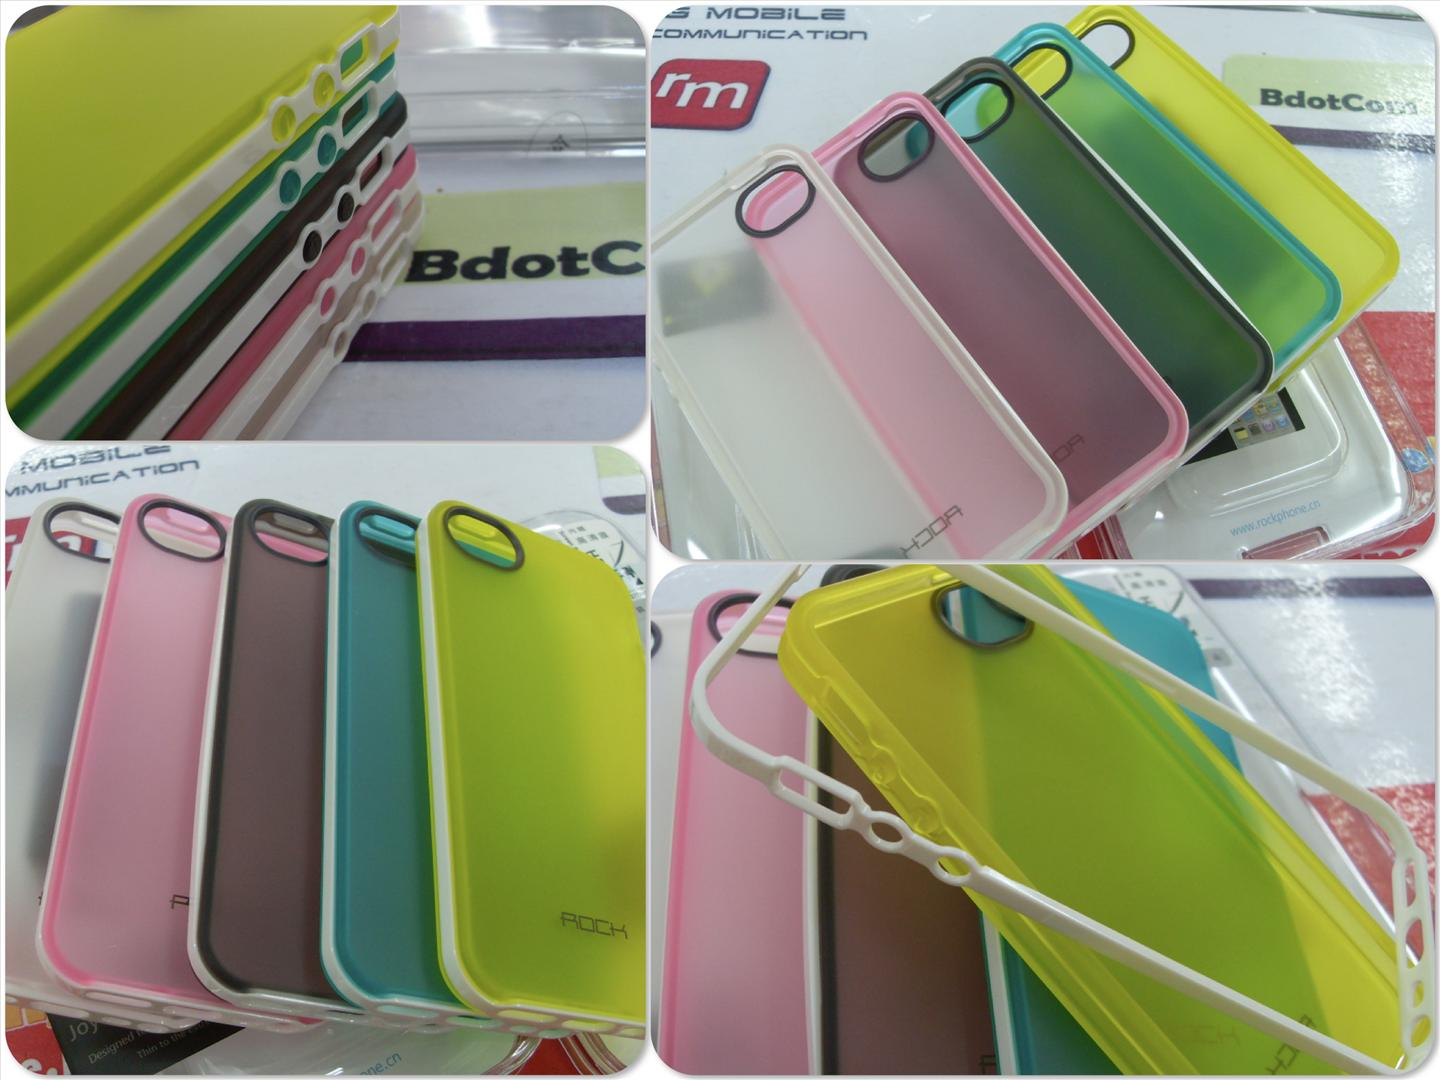 bdotcom = iphone 5 Rock silicon case joyful free series =